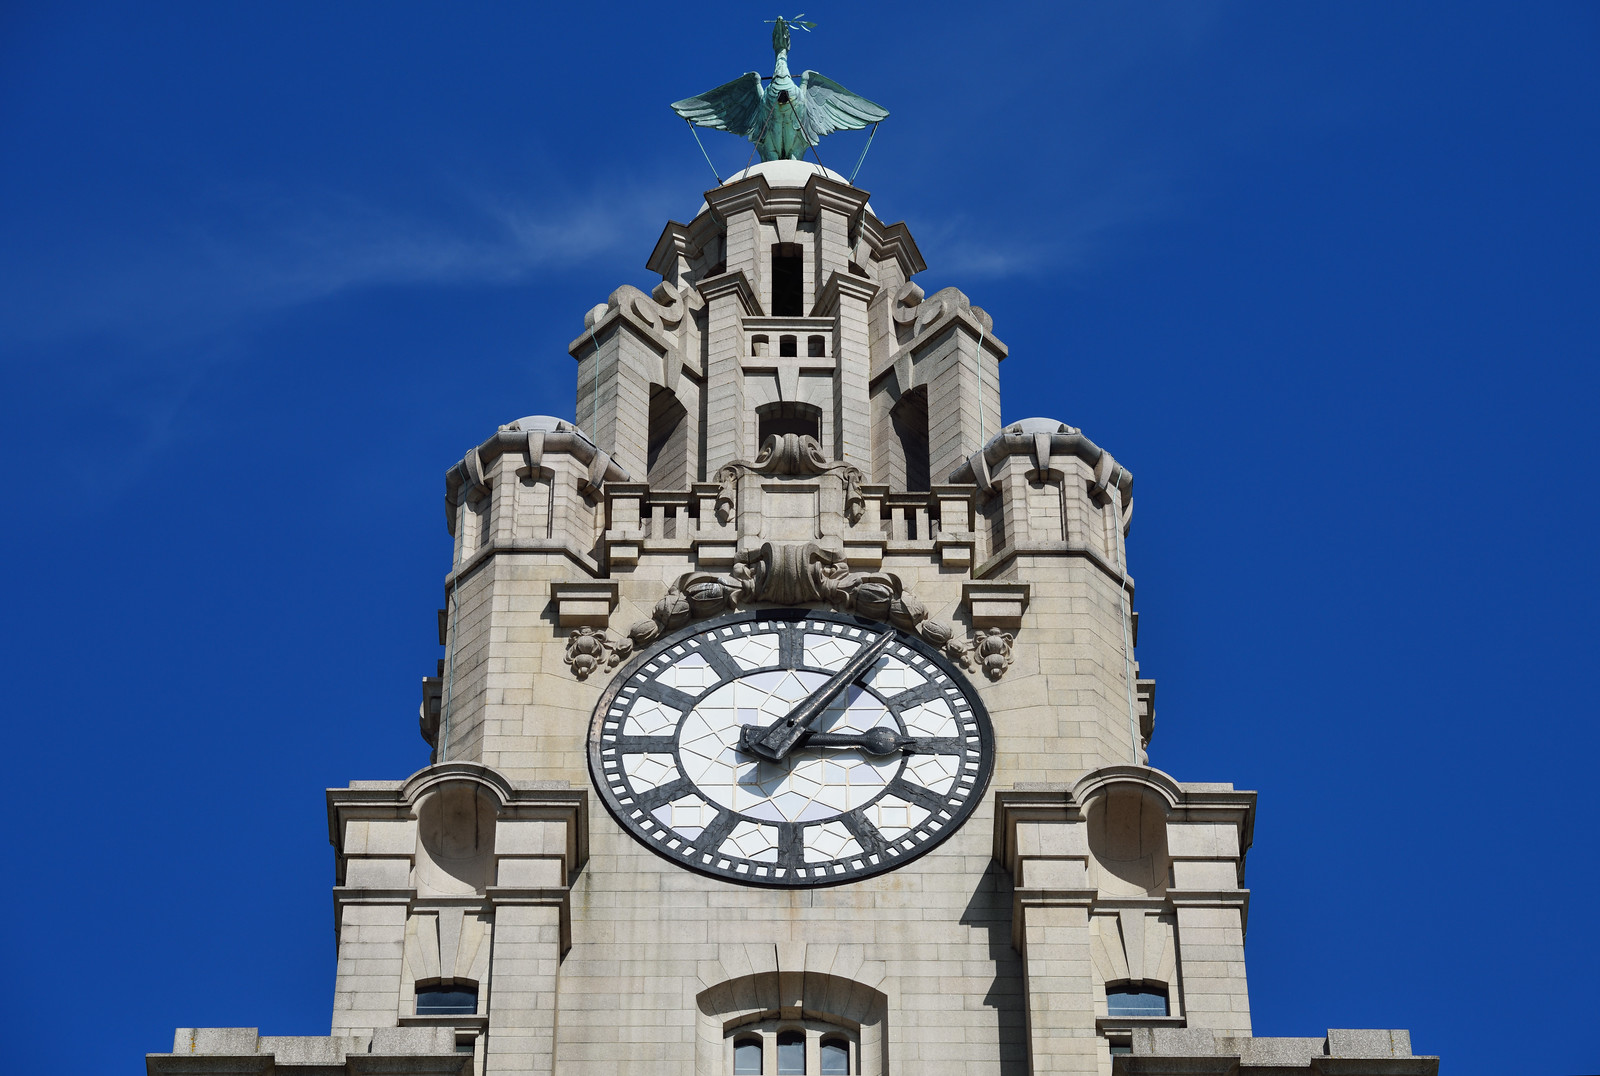 Liverbird and Clock